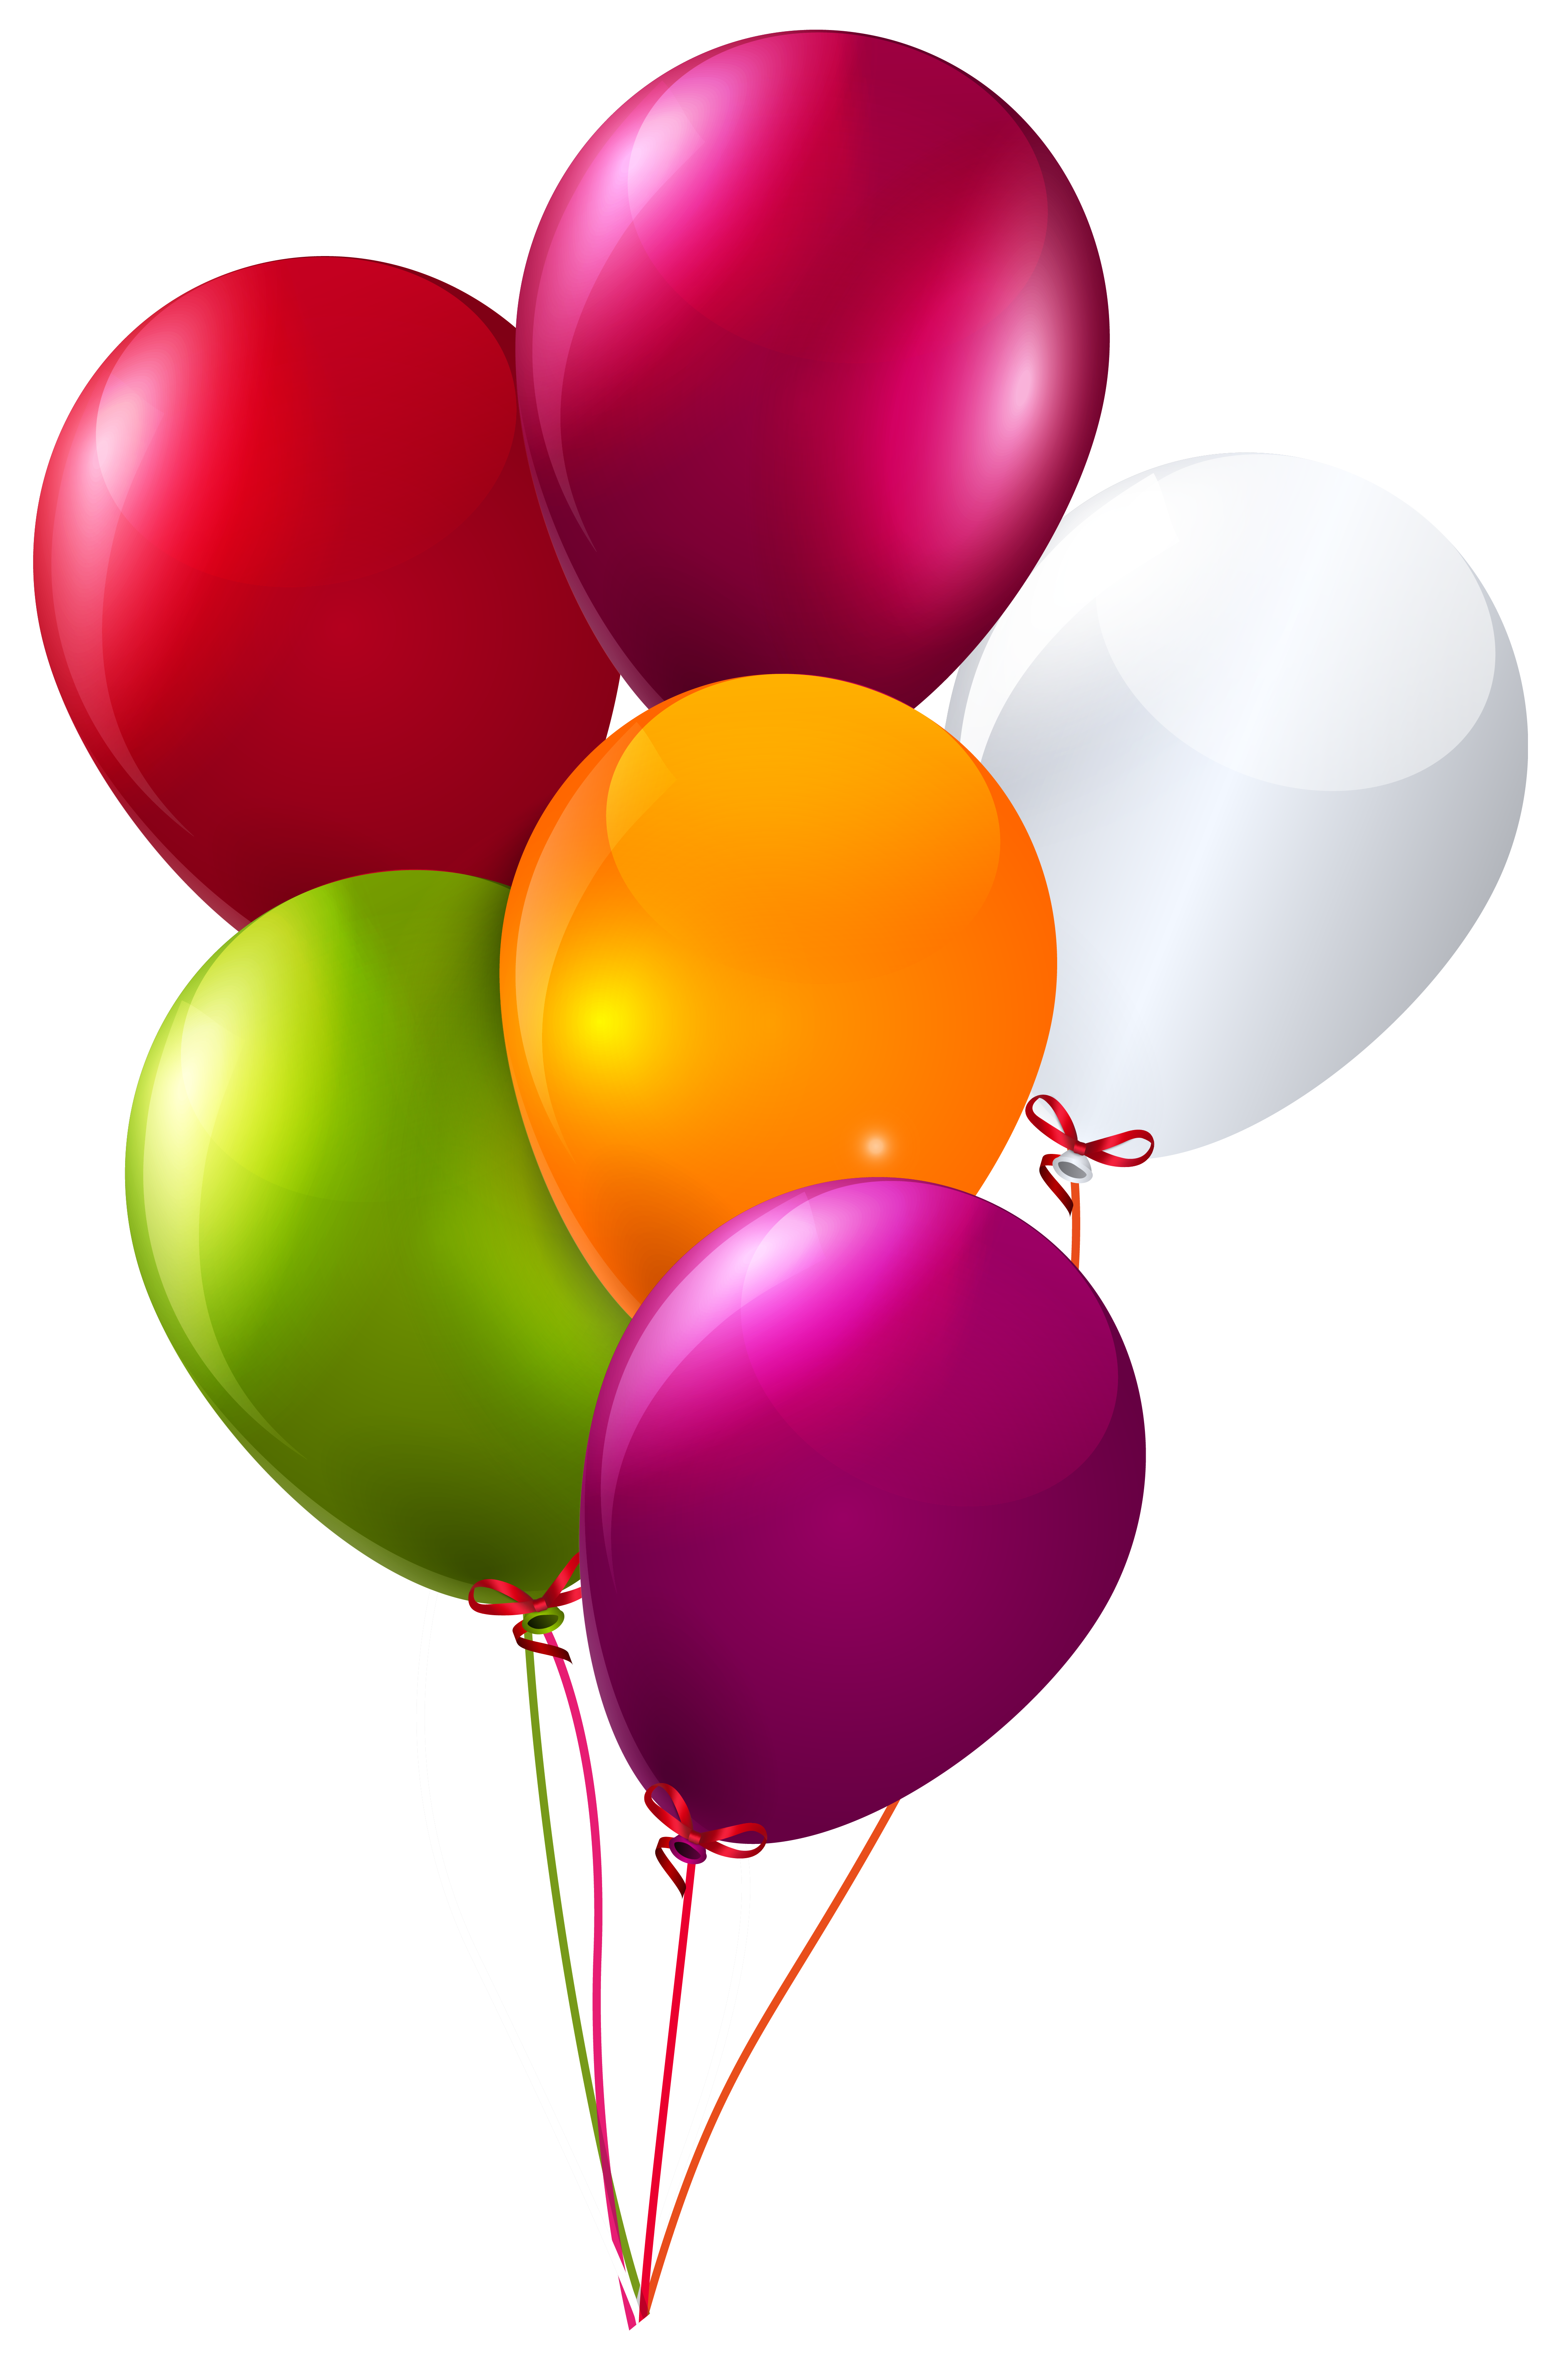 Colorful Bunch of Balloons Clipart PNG Image.